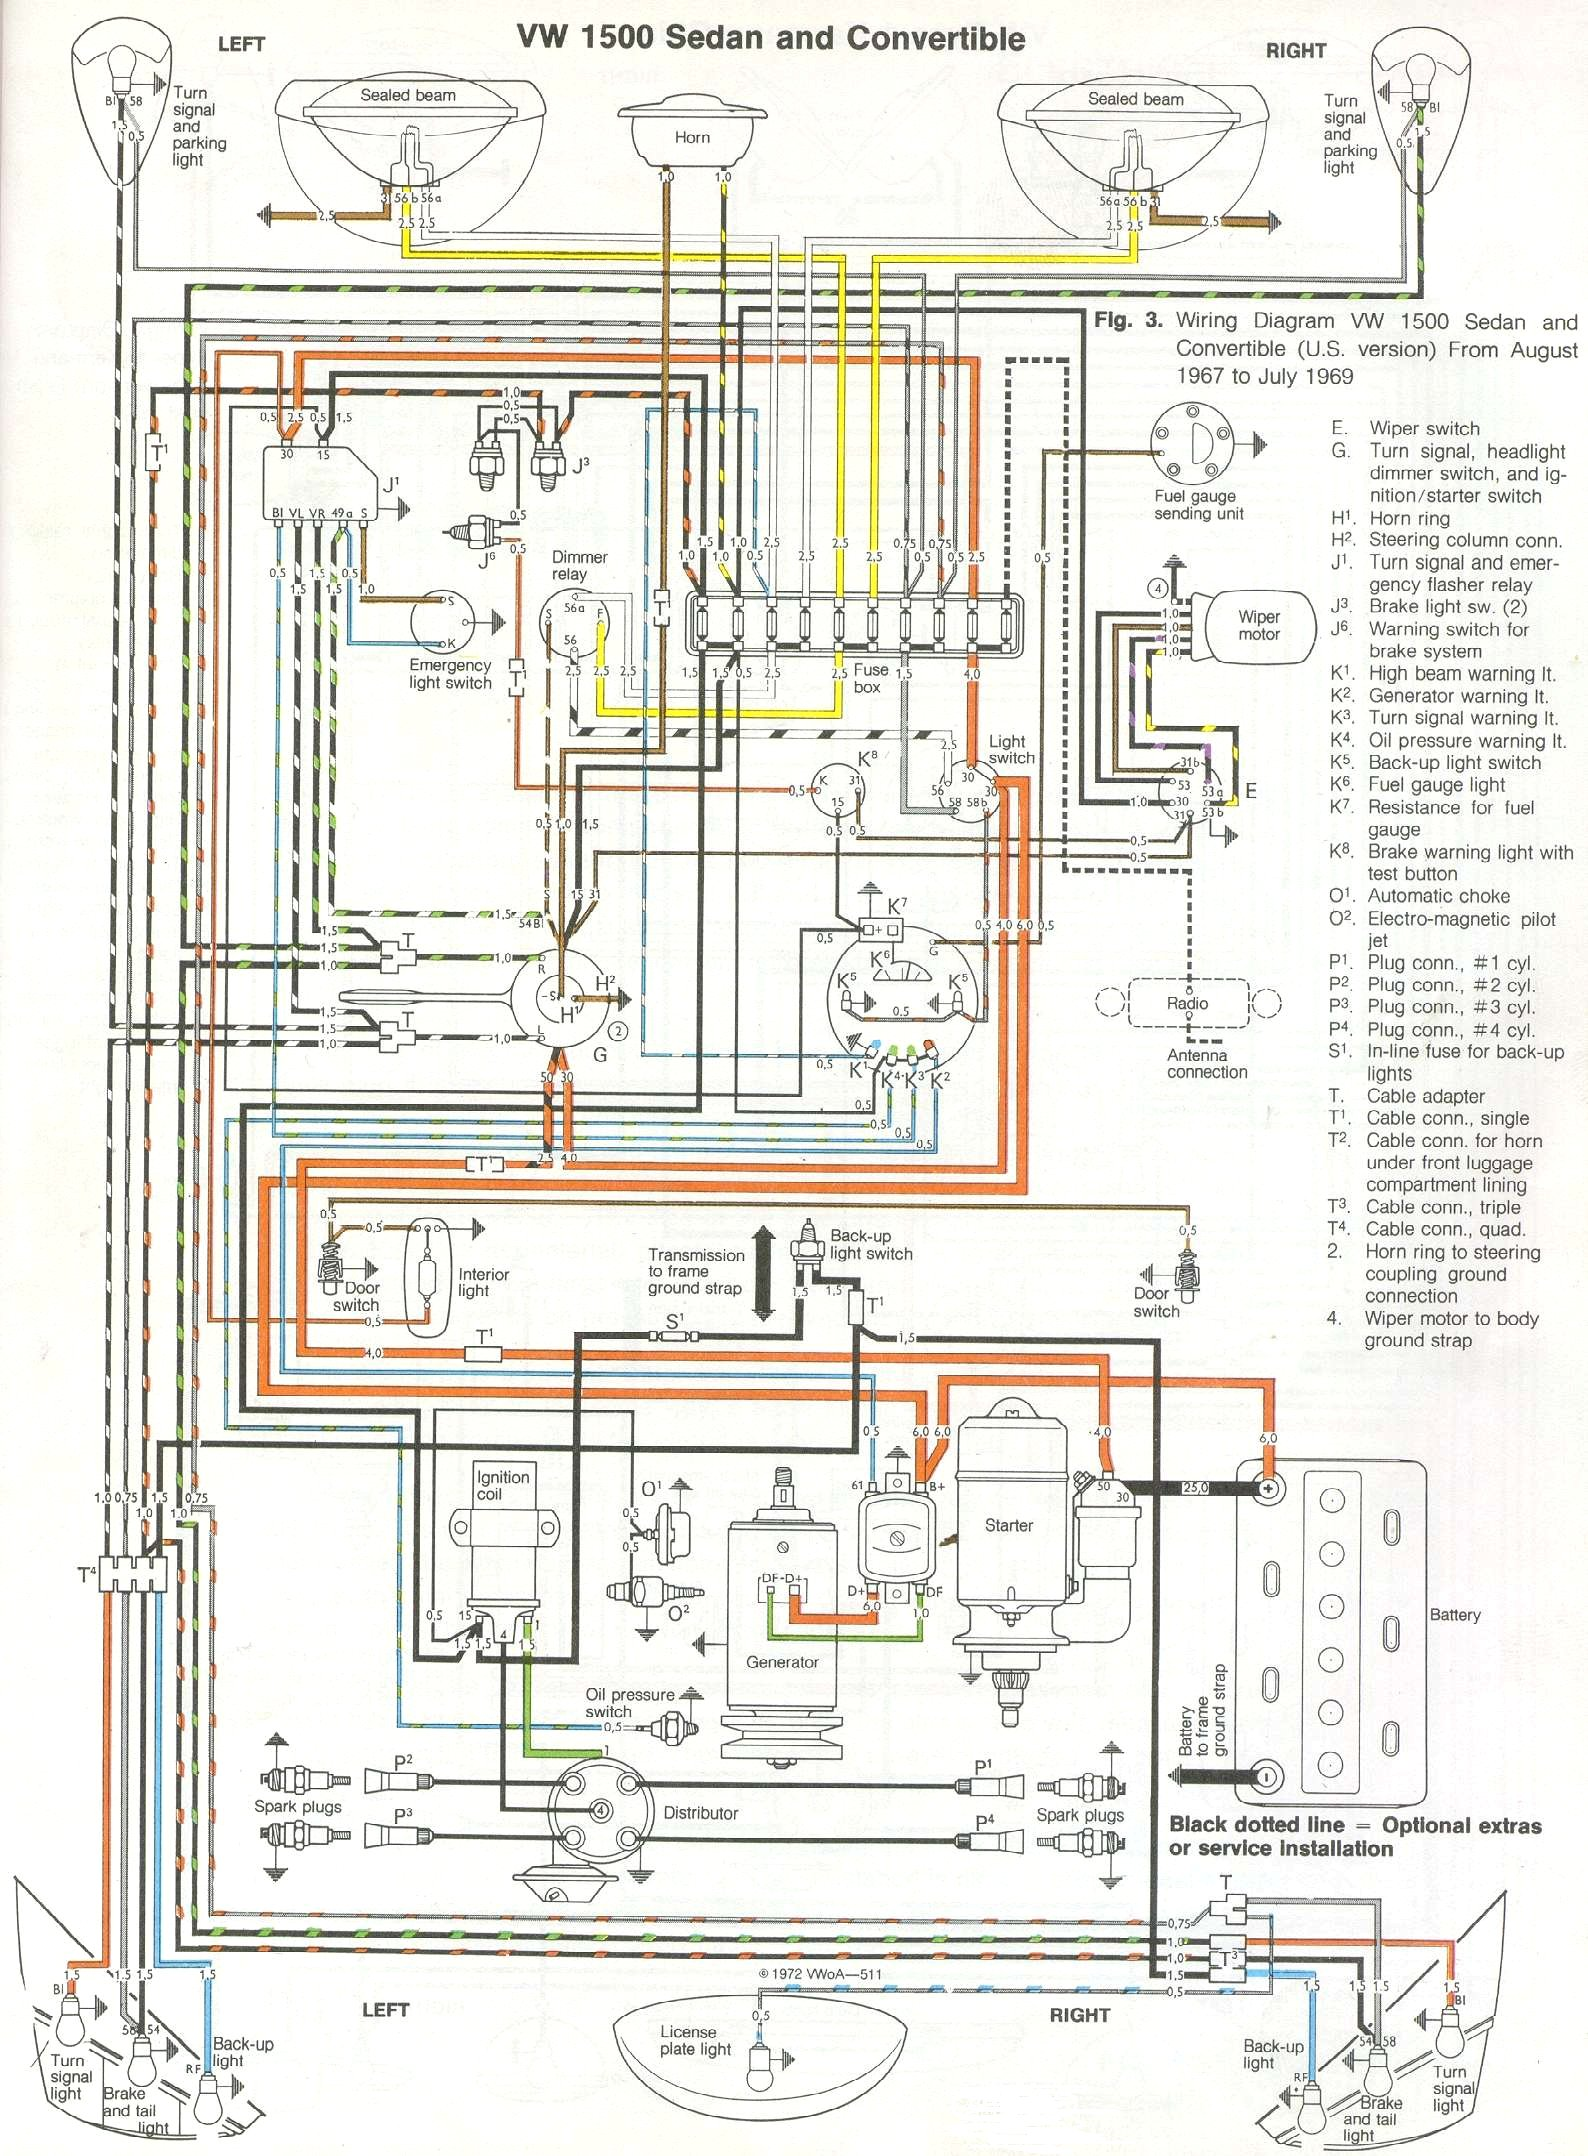 diagram] 69 71 volkswagen beetle wiring diagram full version hd quality wiring  diagram - vptl.arestintori.it  arestintori.it